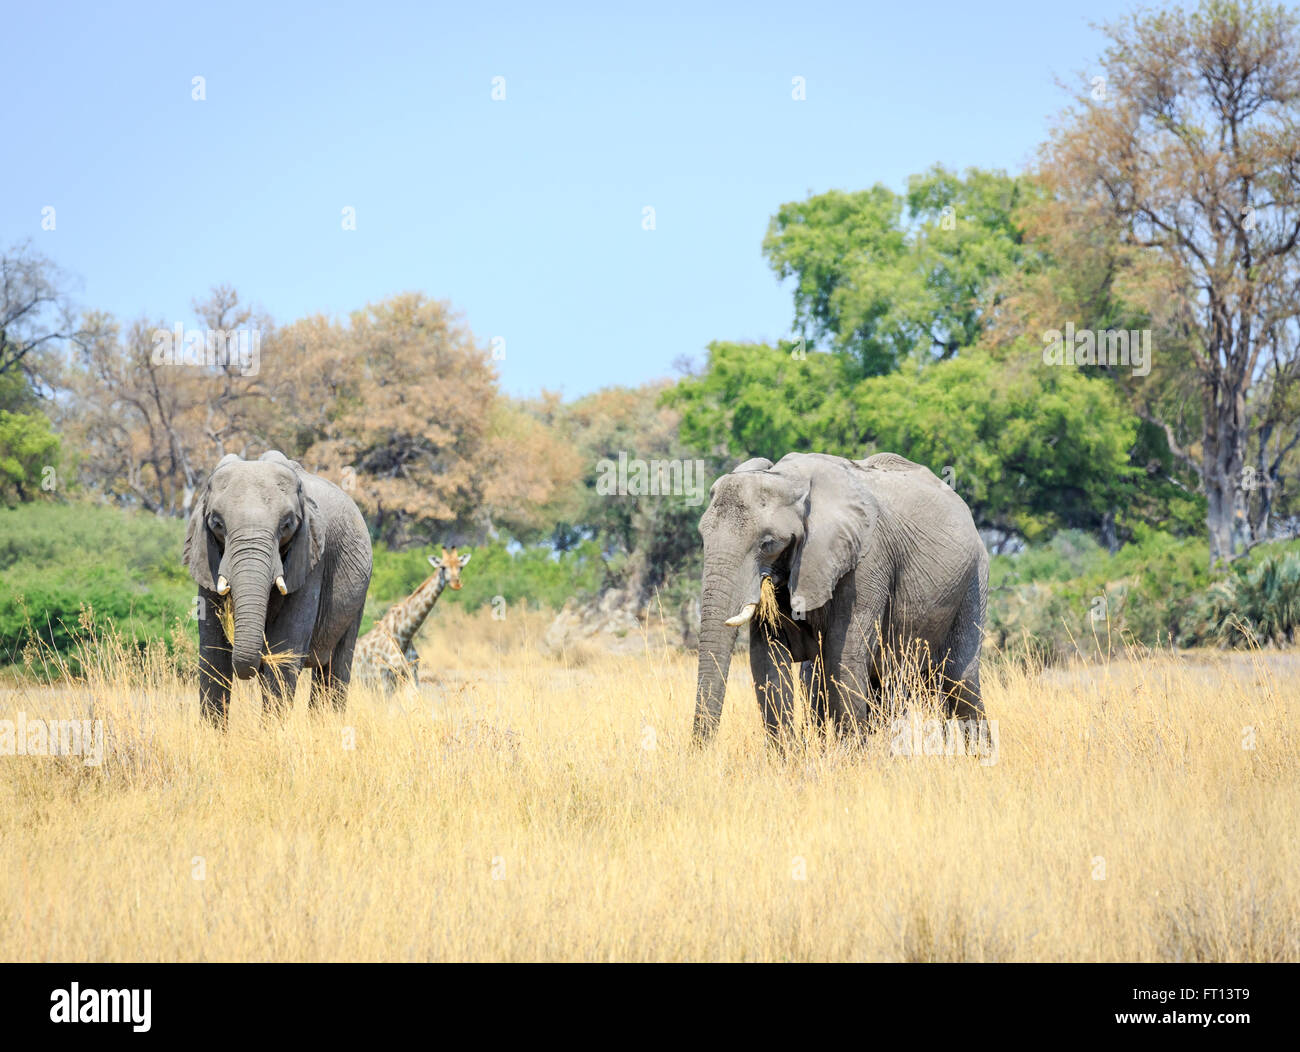 Two African bush elephants (Loxodonta africana) eating grass with giraffe behind, grassland landscape near Sandibe Stock Photo